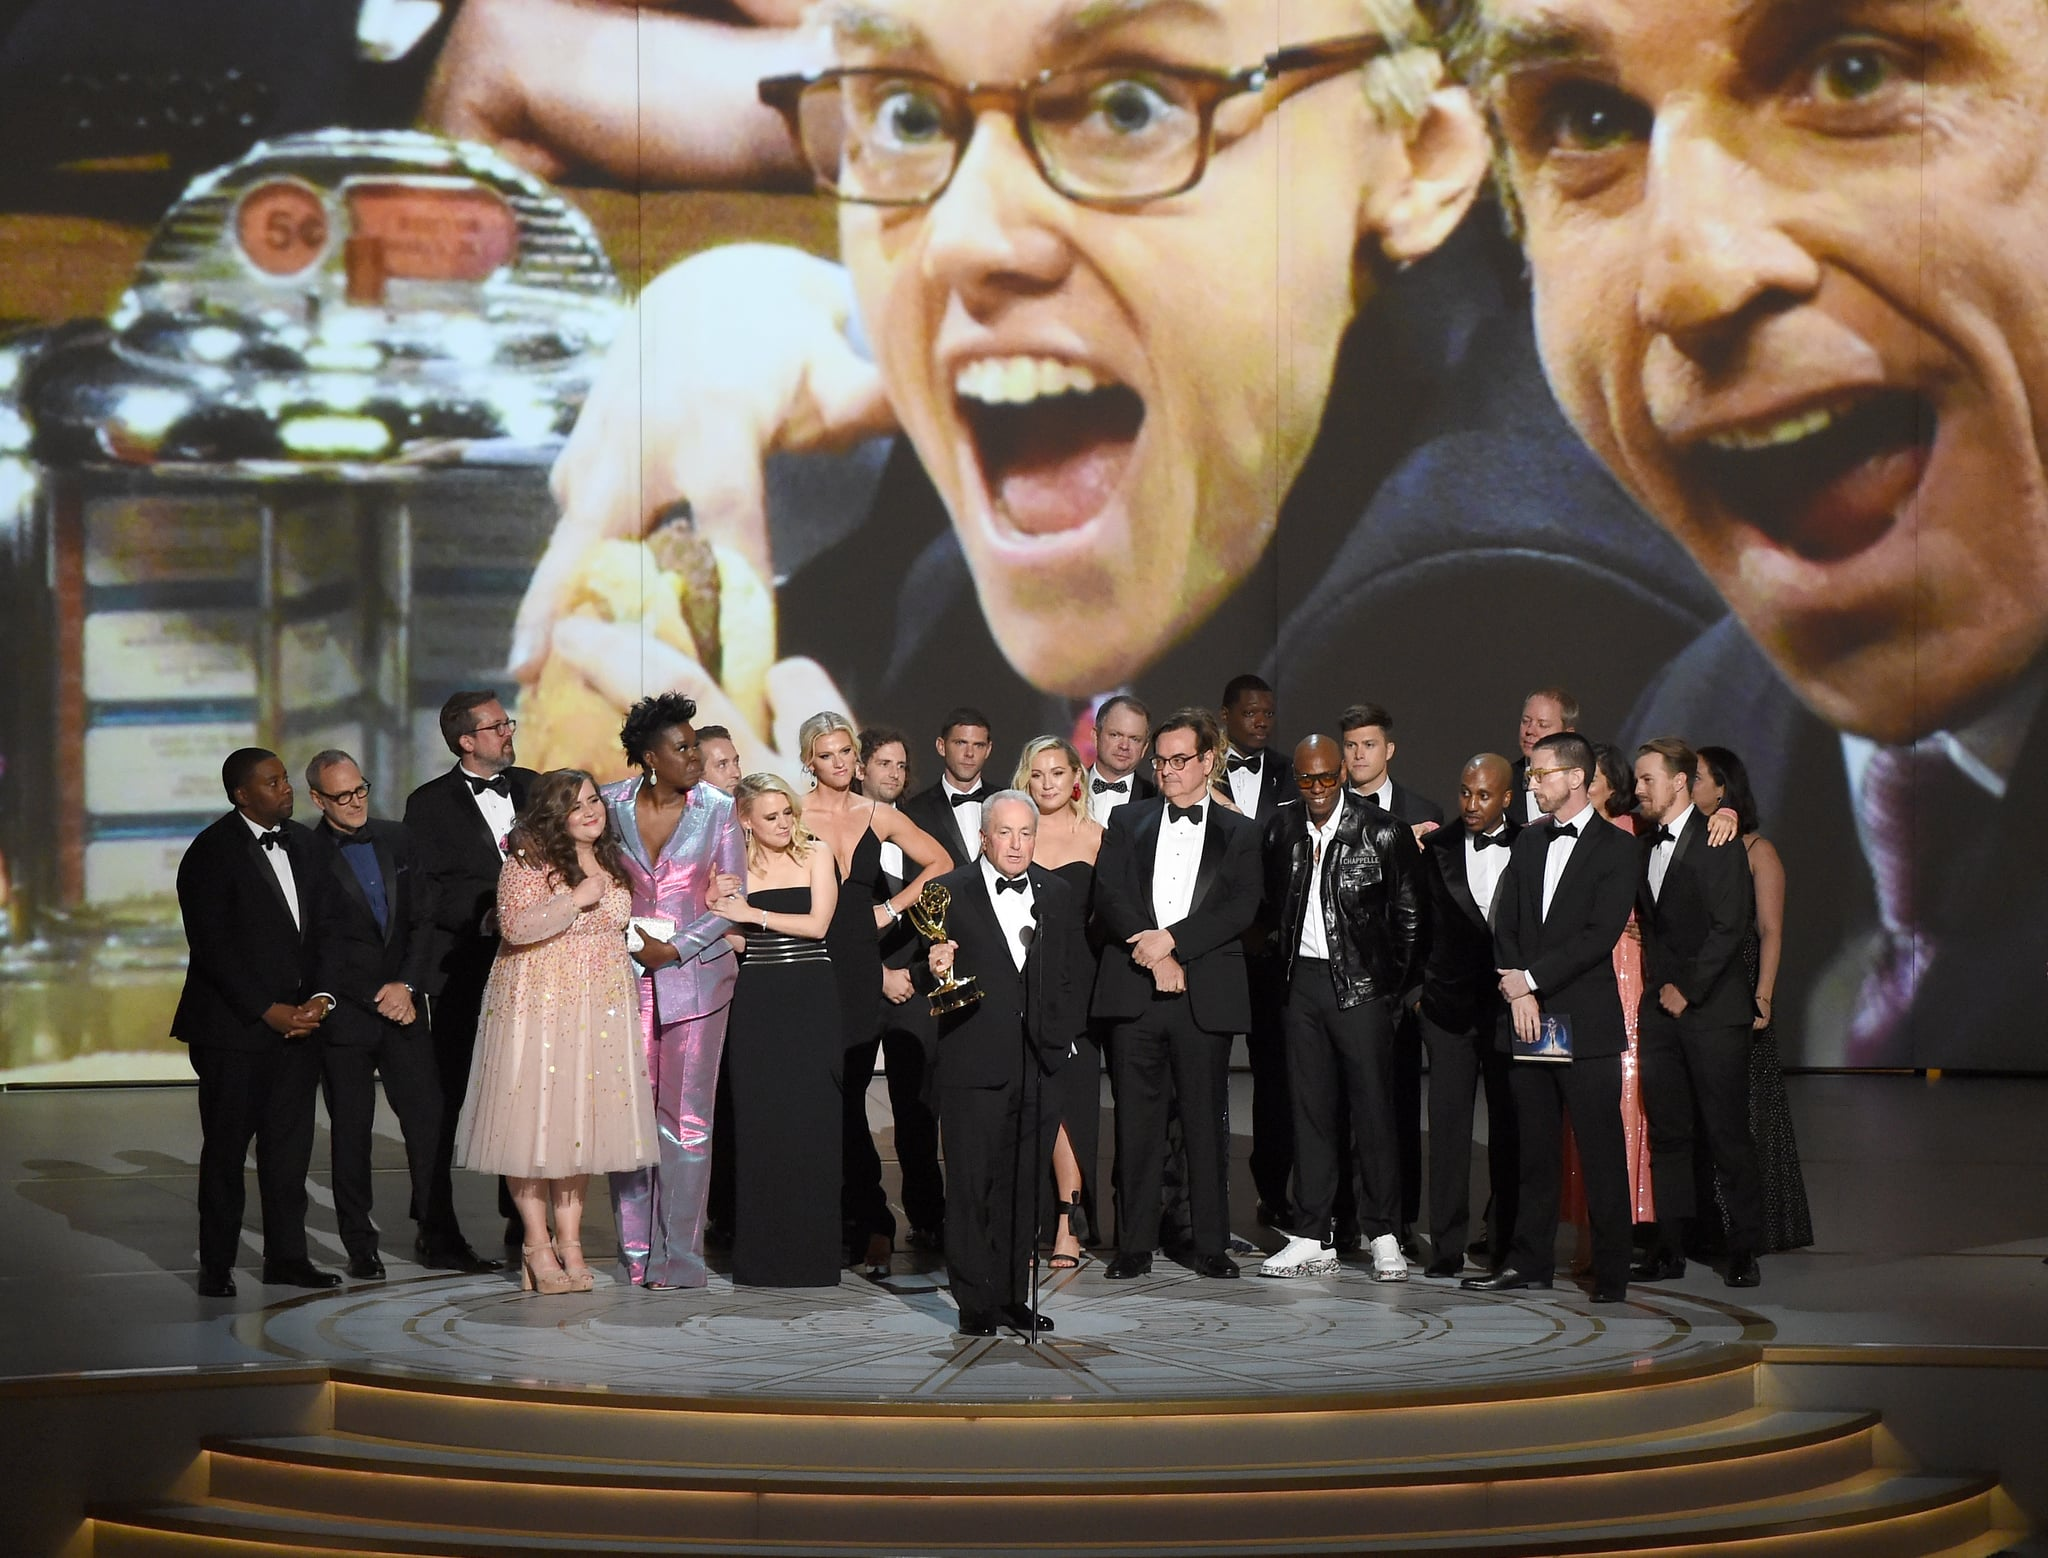 LOS ANGELES, CA - SEPTEMBER 17:  Lorne Michaels (C) and cast and crew accepts the Outstanding Variety Sketch Series award for 'Saturday Night Live' onstage during the 70th Emmy Awards at Microsoft Theatre on September 17, 2018 in Los Angeles, California.  (Photo by Kevin Winter/Getty Images)